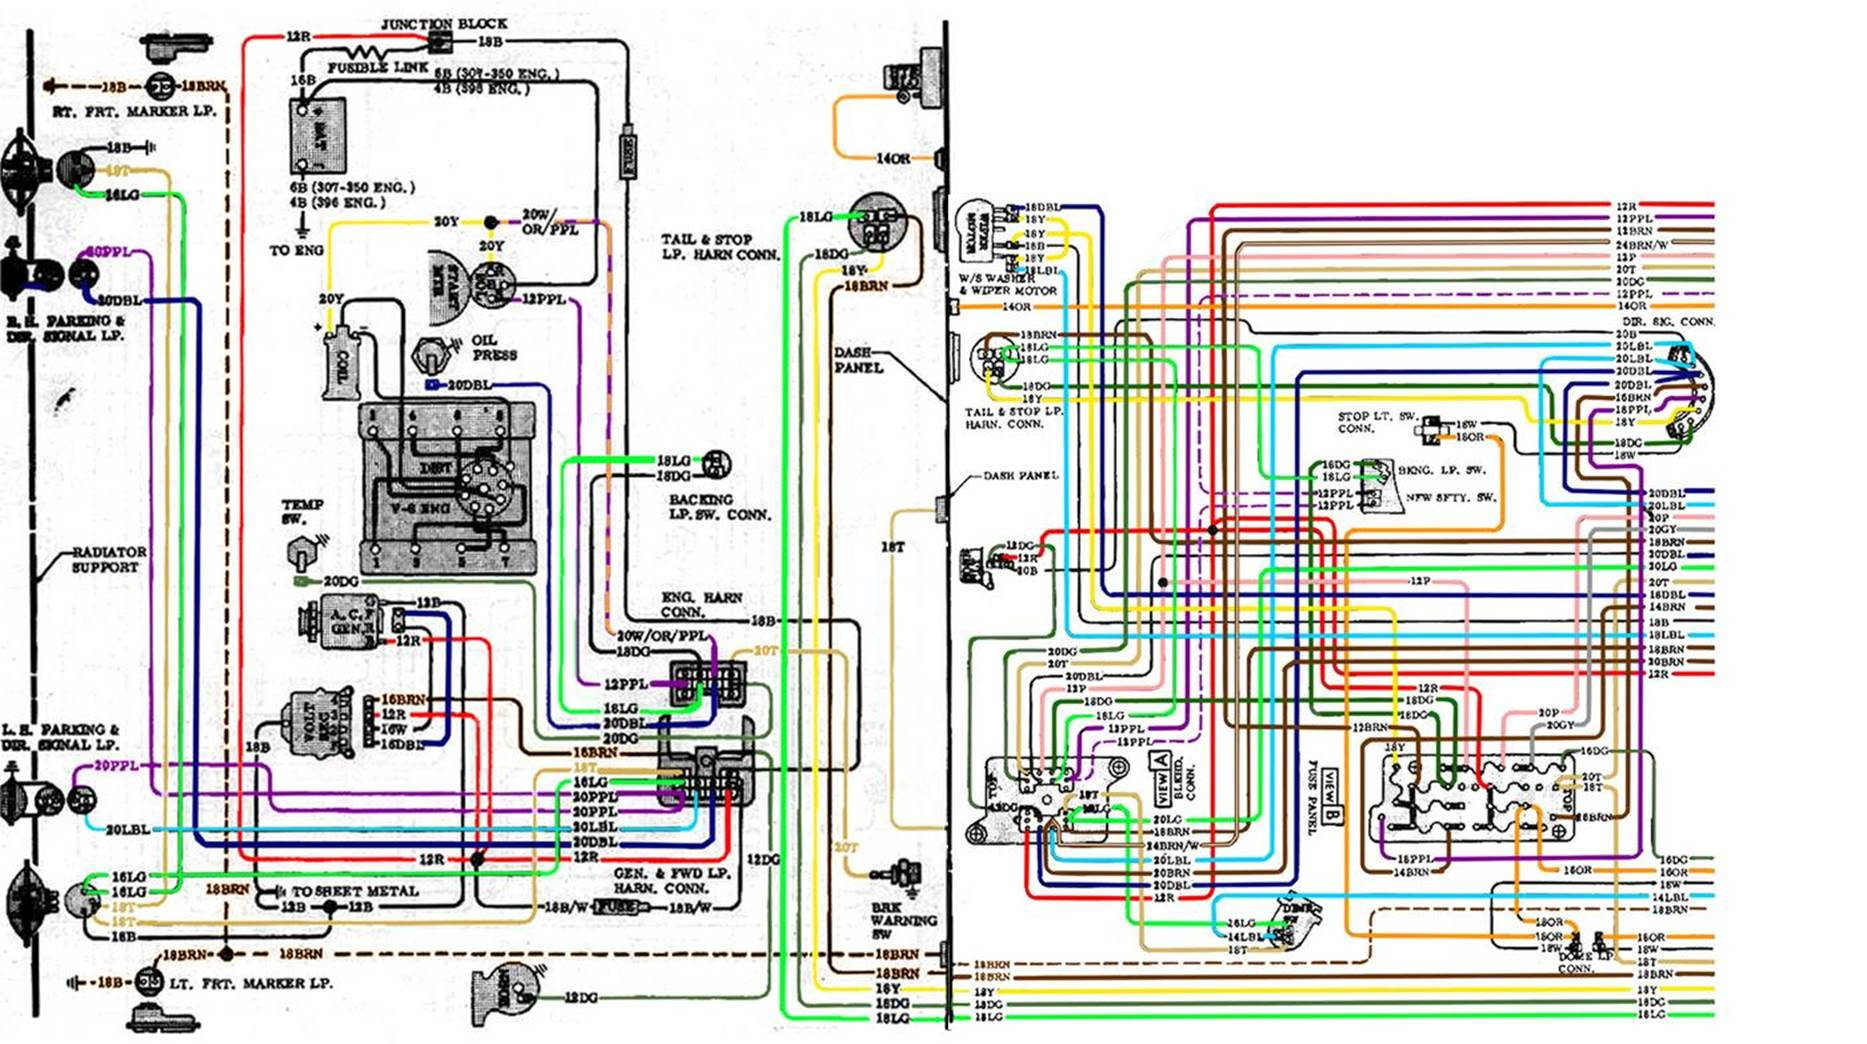 image002 67 72 chevy wiring diagram GMC Sierra Wiring Schematic at crackthecode.co